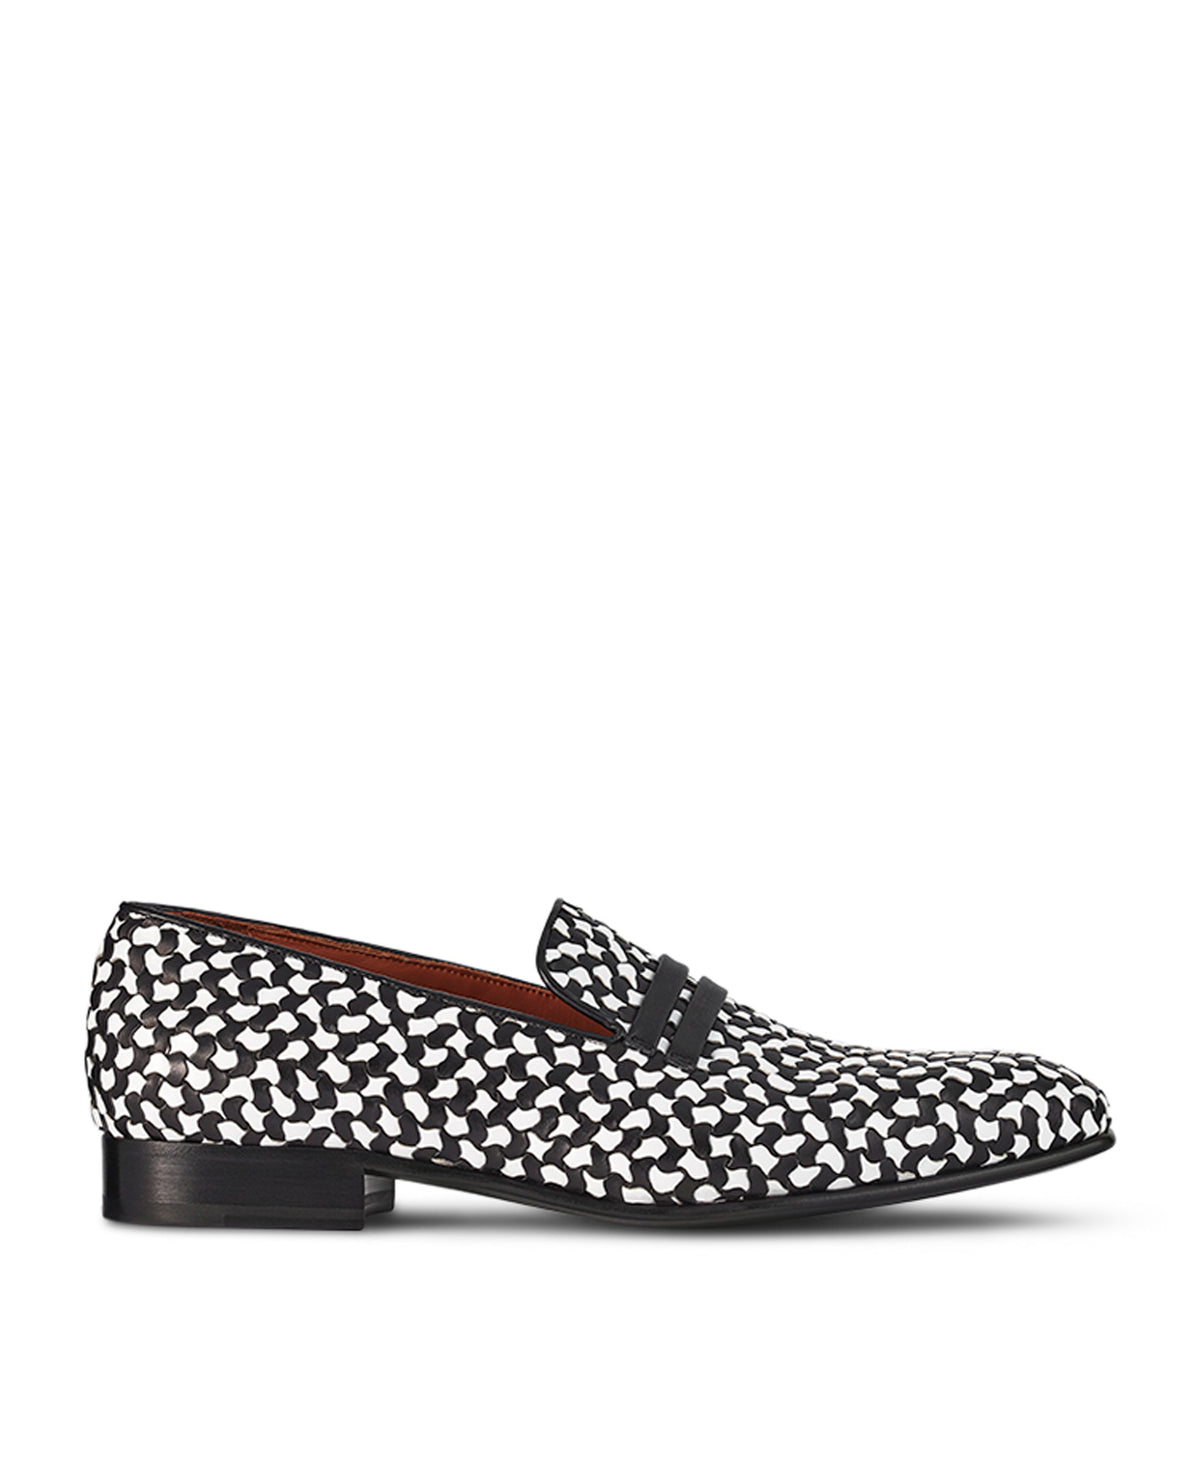 Men's Black and White Woven Leather Loafers Malone Souliers